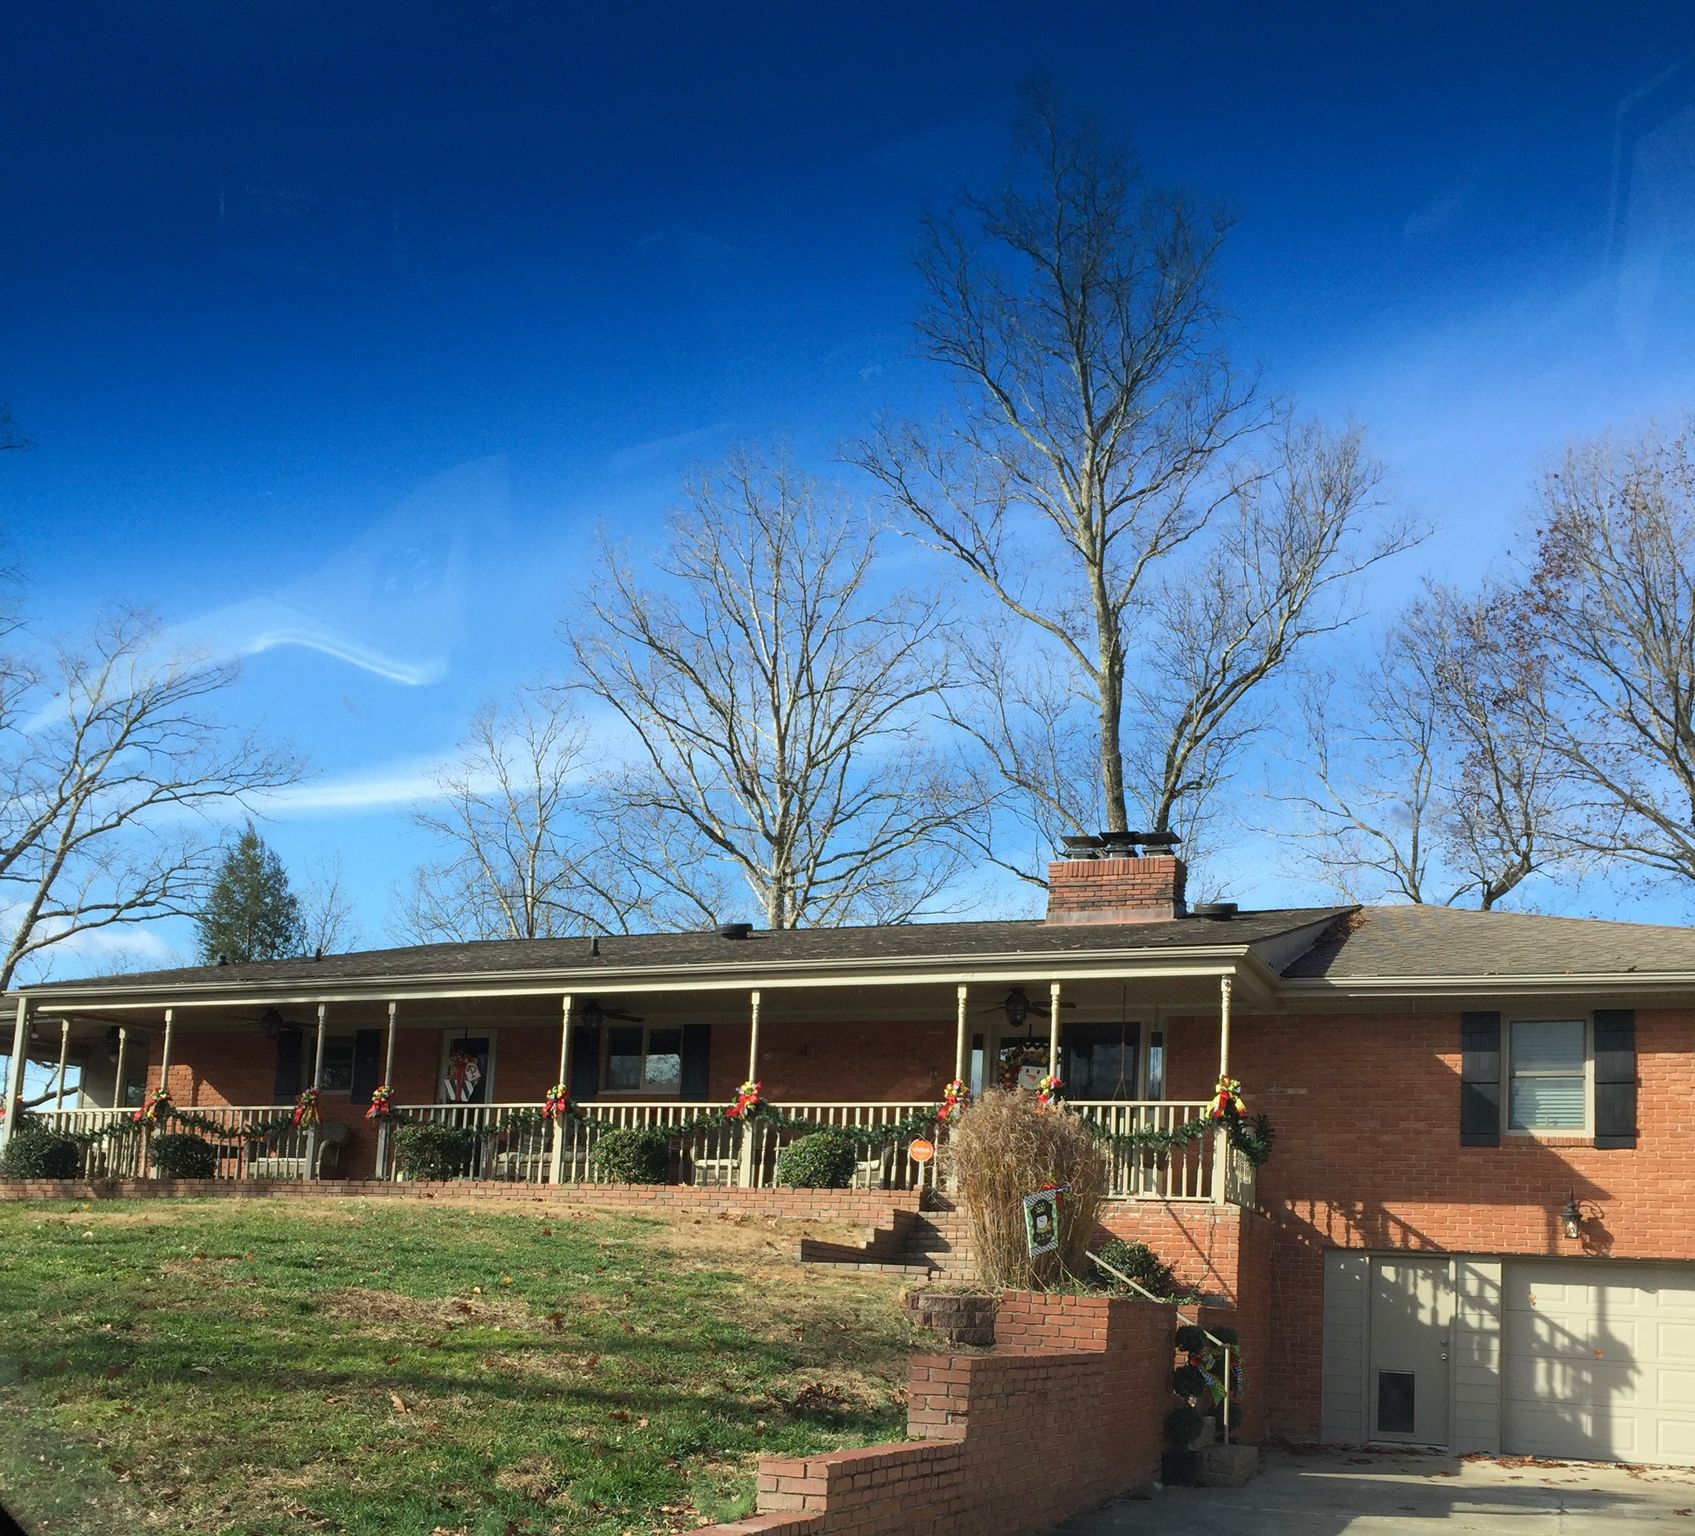 19432 Bear Creek Rd, Catlettsburg, KY 41129 - Recently Sold | Trulia